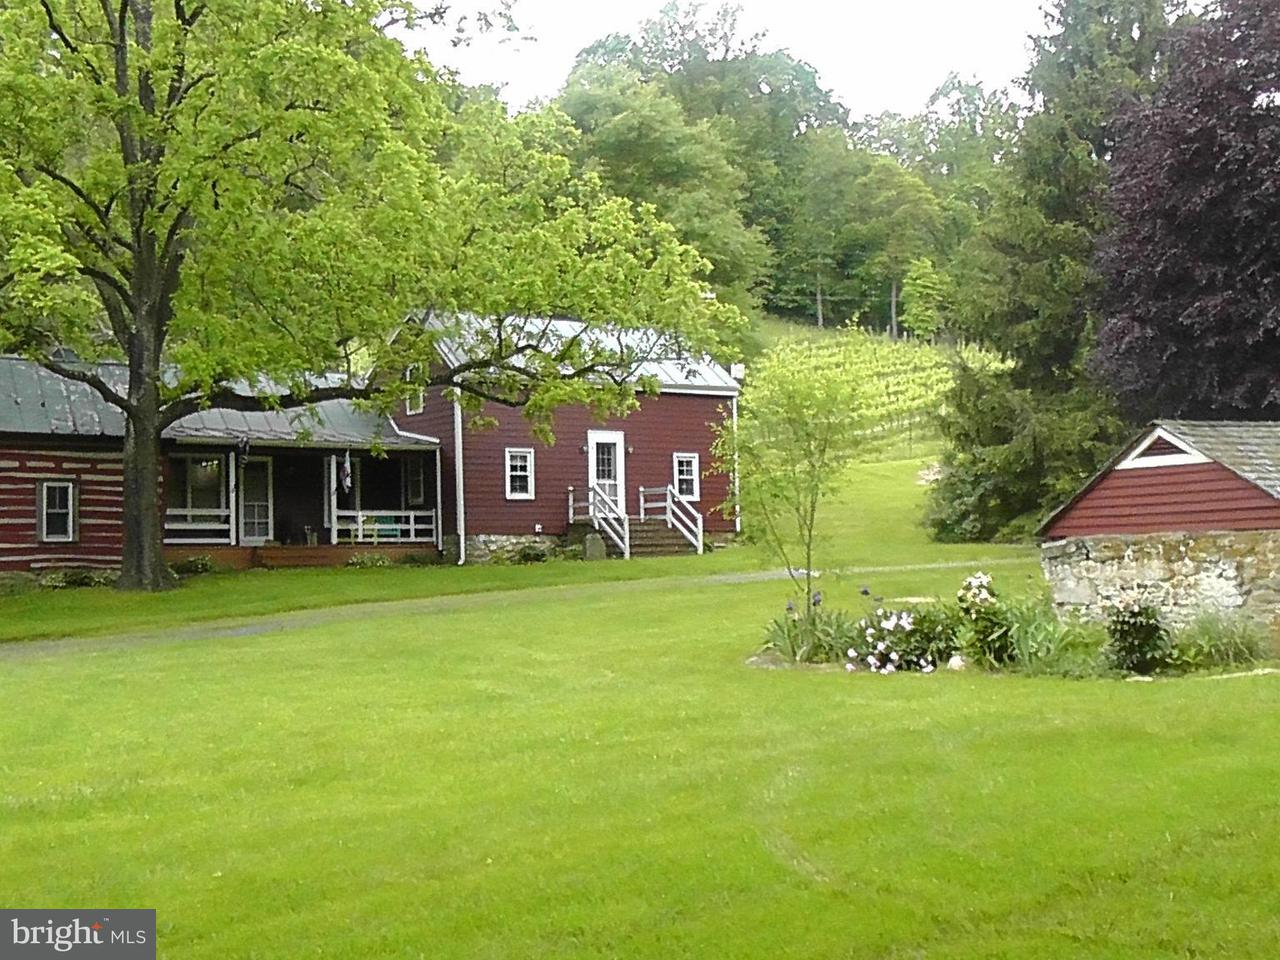 Farm for Sale at 423 BEN VENUE Road 423 BEN VENUE Road Flint Hill, Virginia 22627 United States